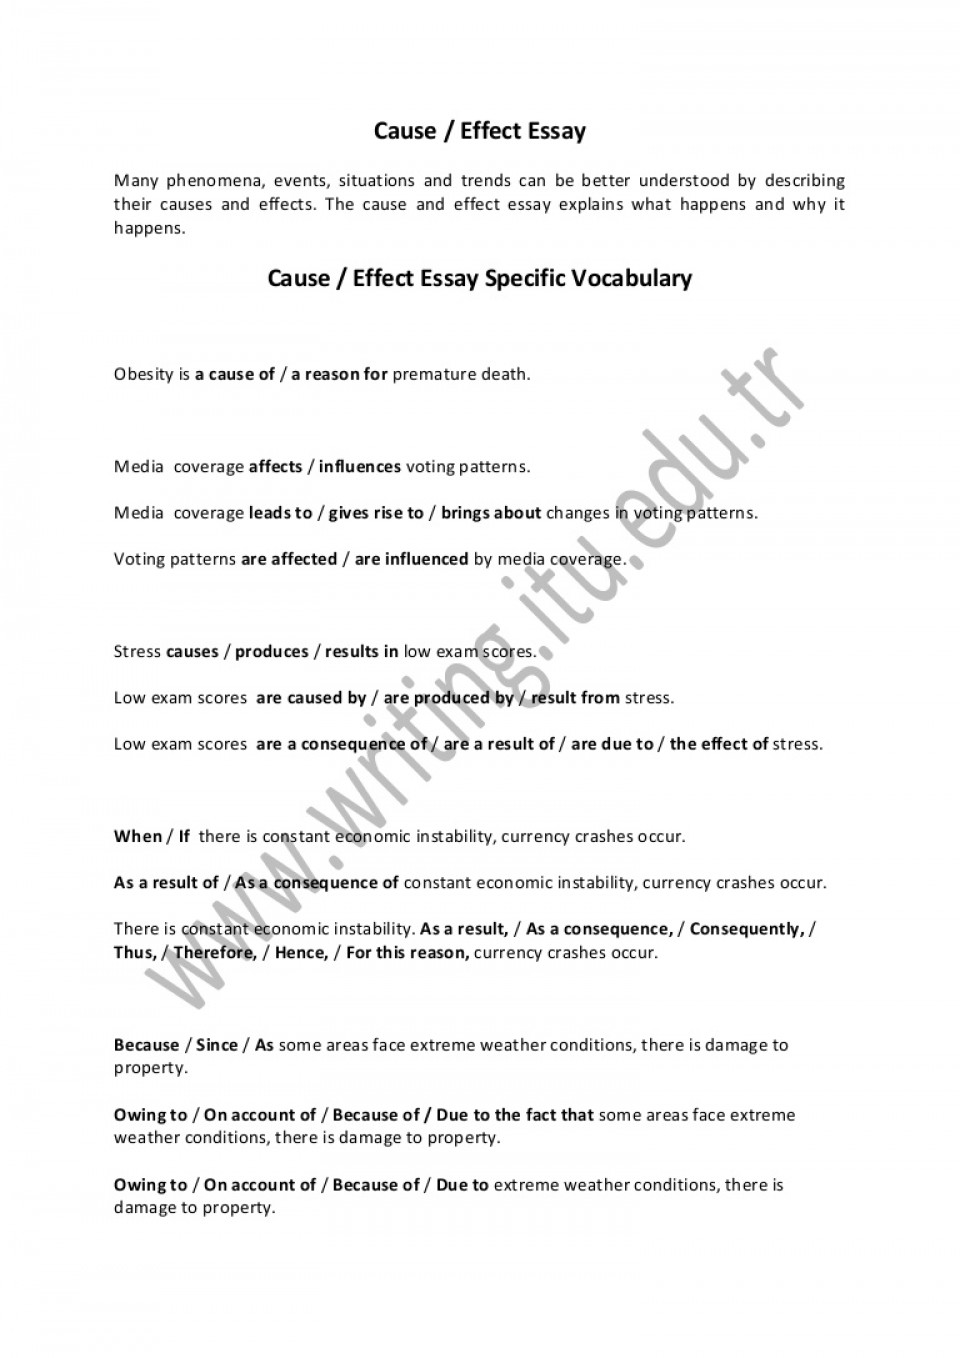 019 Essay Example Causeandeffectessay Thumbnail Cause And Effect Amazing Examples Divorce Sentences 960